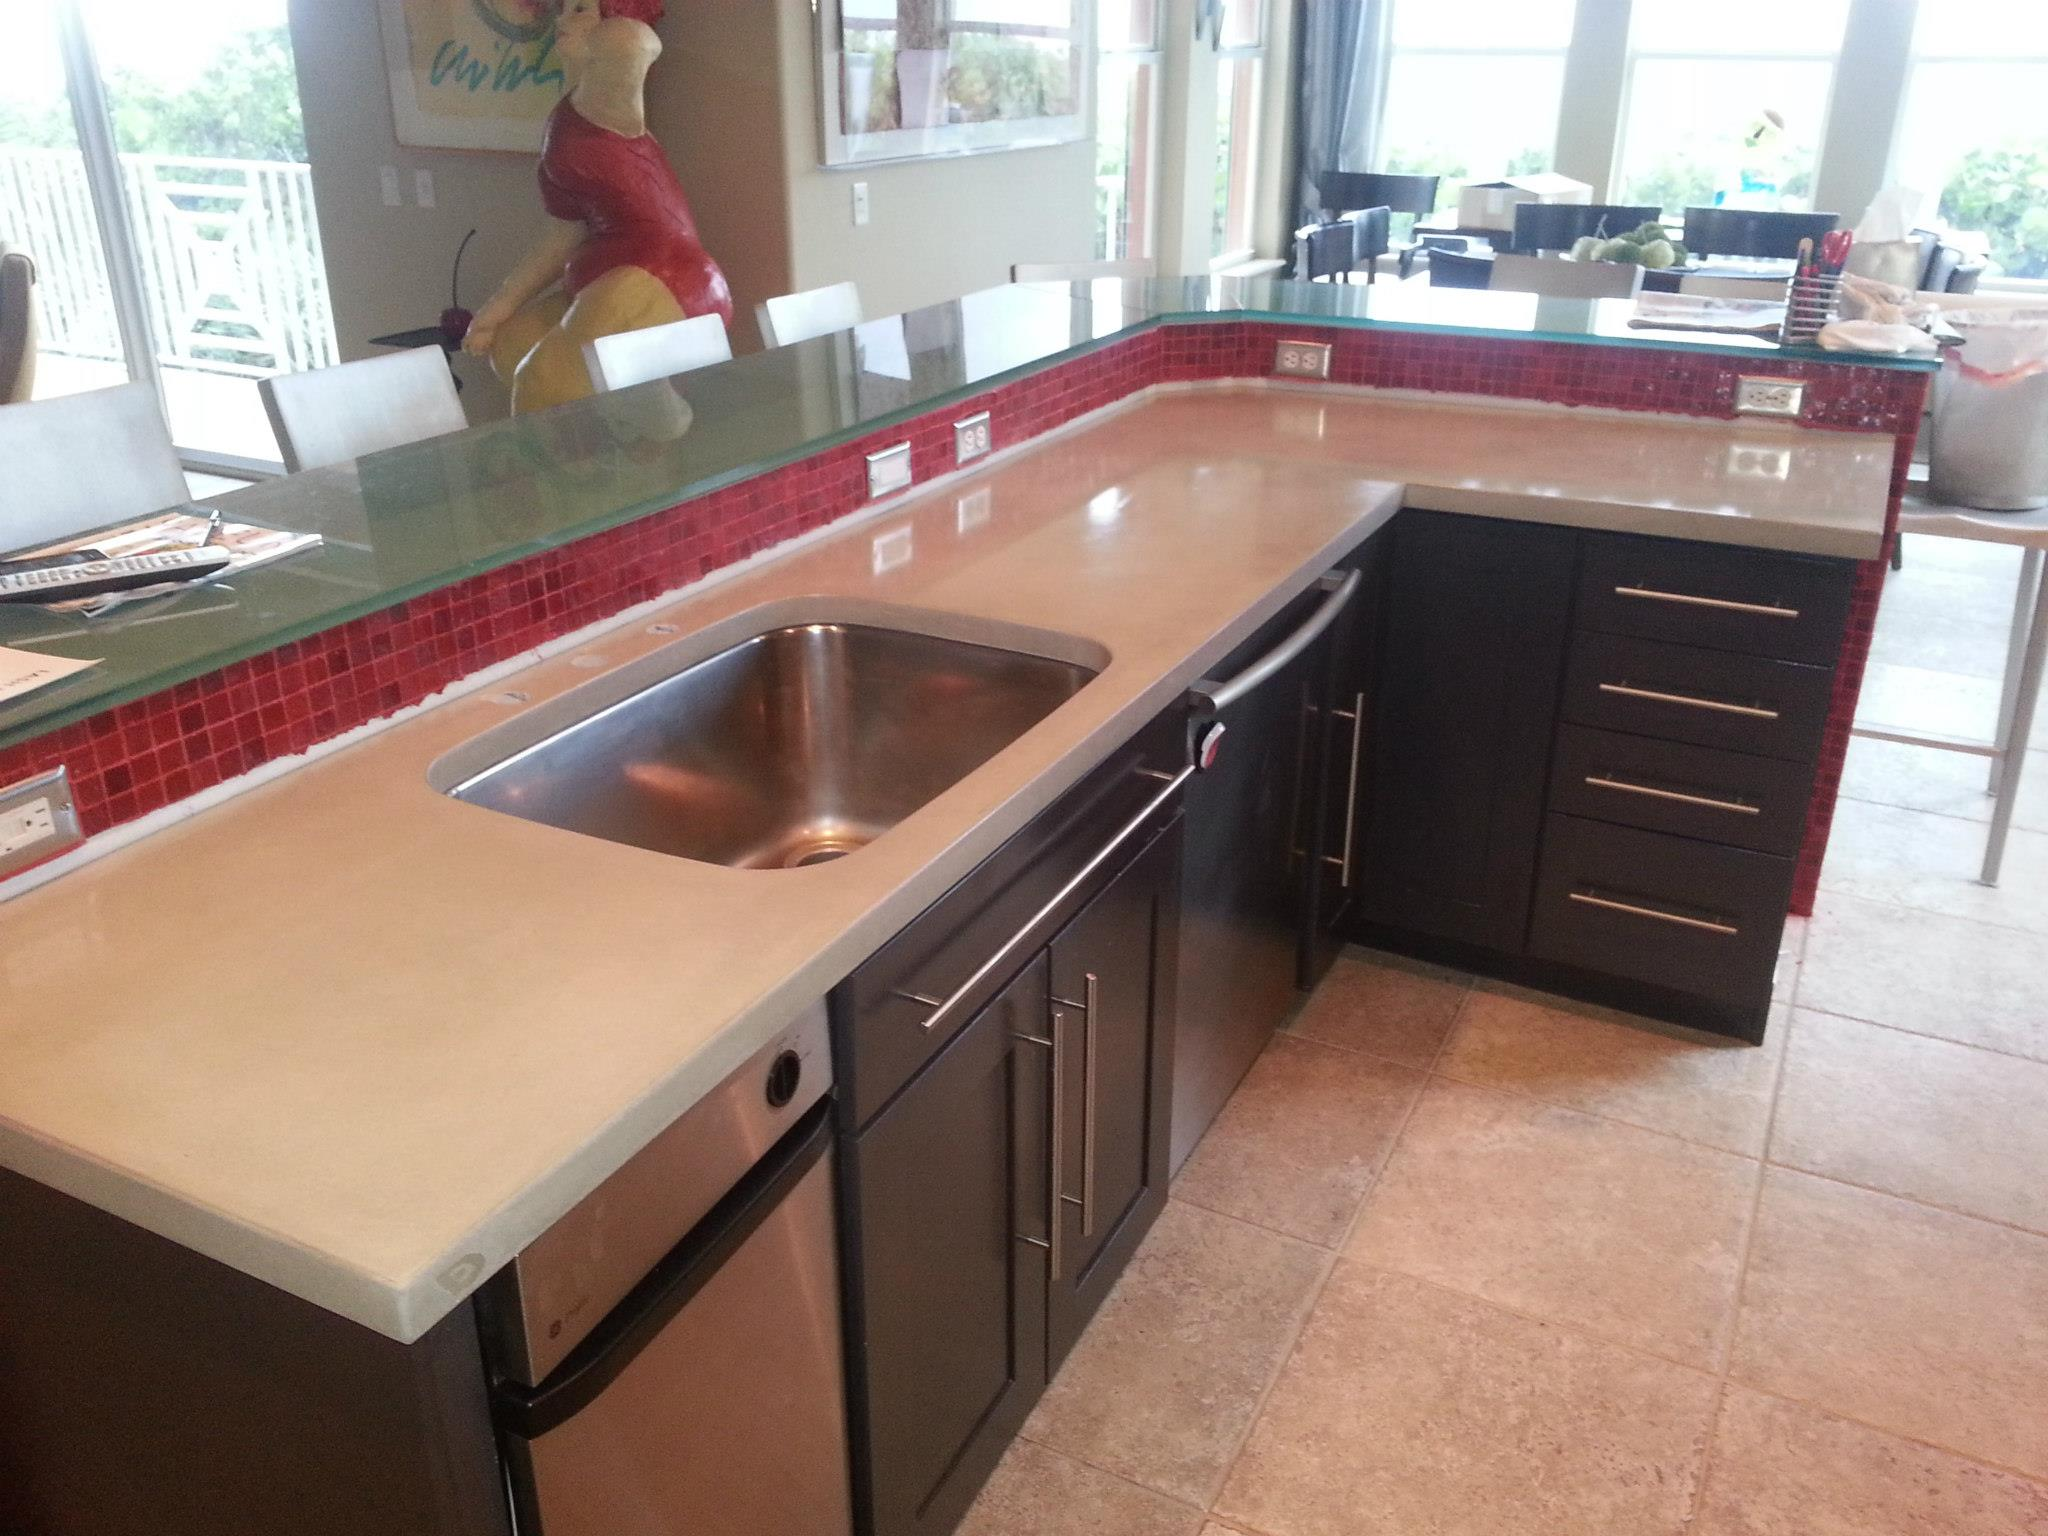 cement kitchen sink country decorations how to effectively sell concrete countertops homeowners navigating the initial inquiry